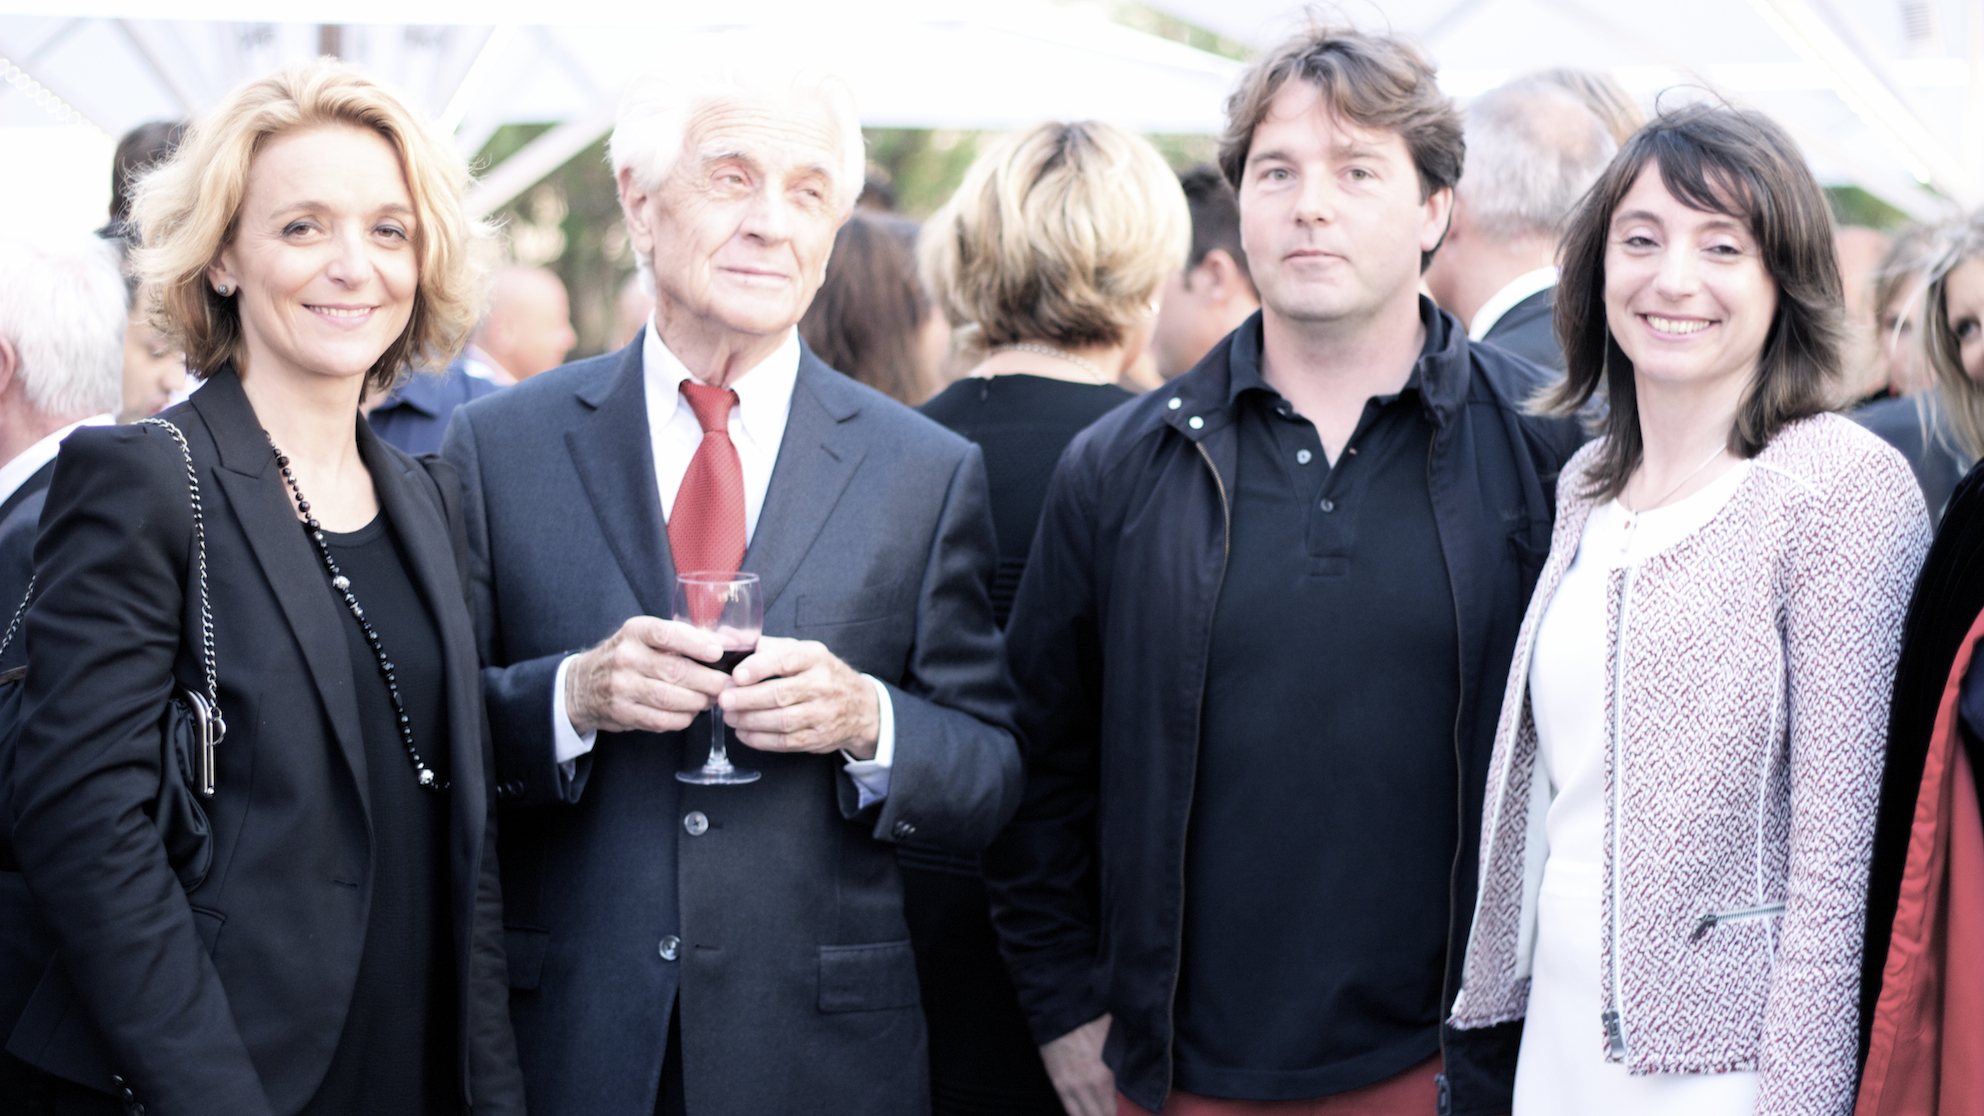 INAUGURATION-GRAND-HOTEL-saint-jean-de-luz-agence-evenementielle-pays-basque-le-cercle-evenements-egiategia- 369